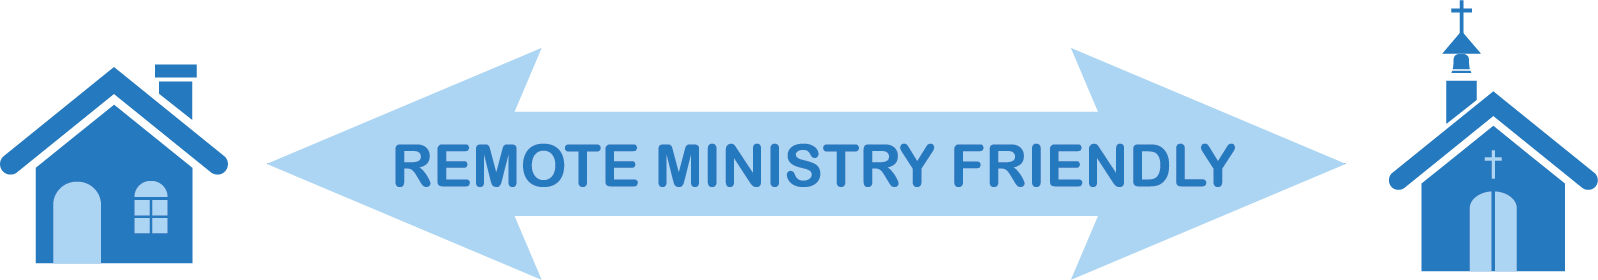 Remote Ministry Friendly